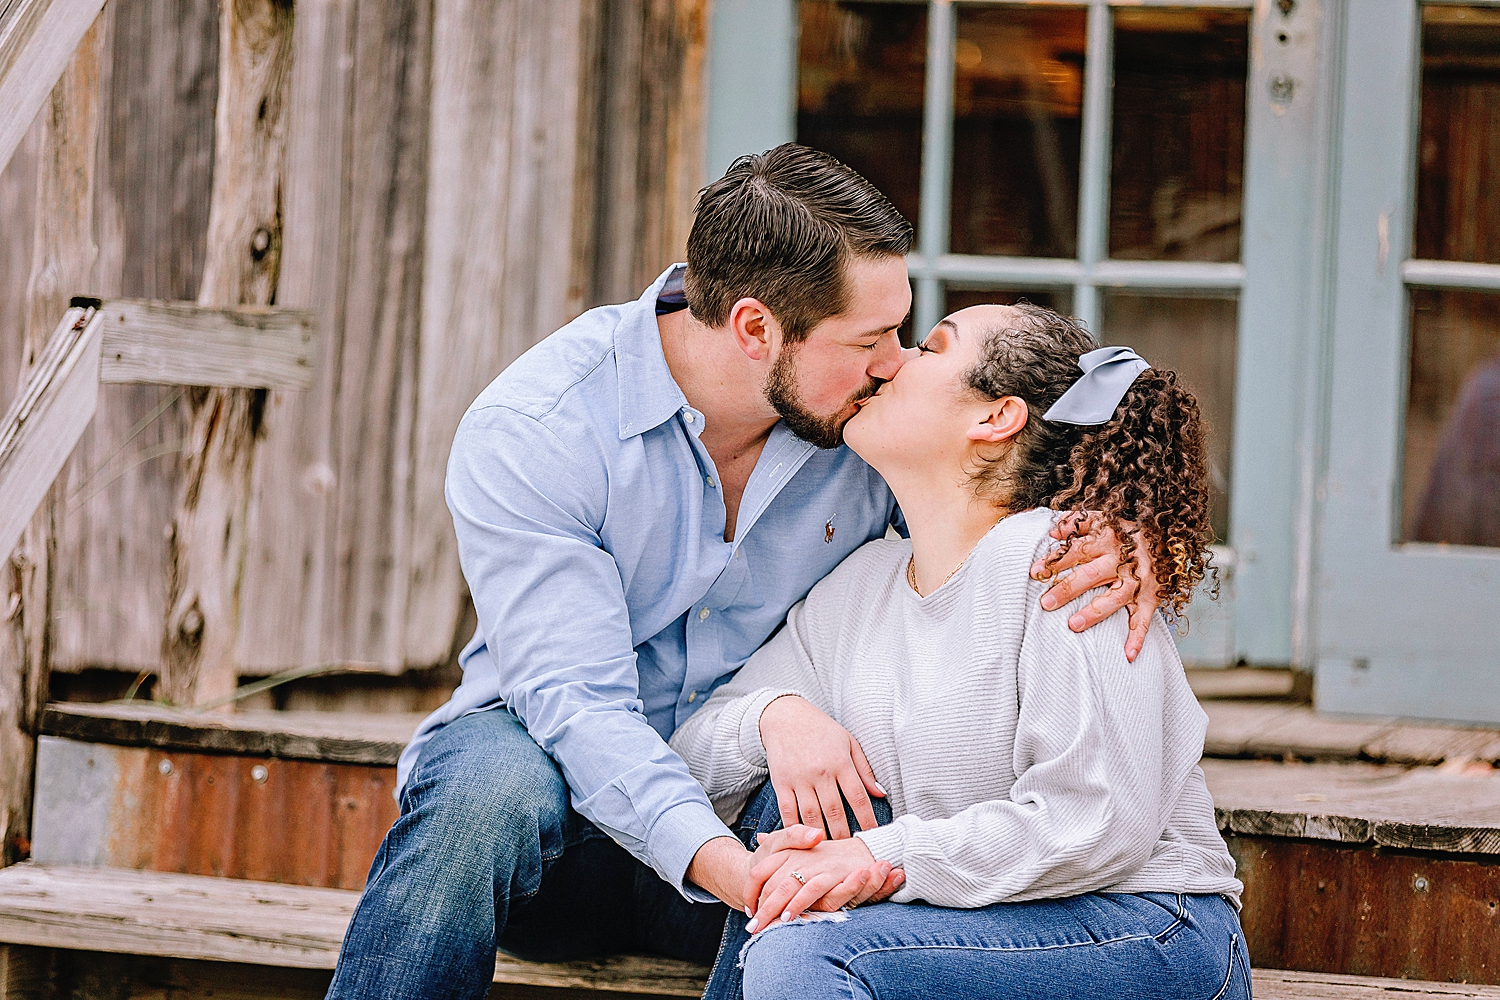 Engagement-photo-session-gruene-new-braunfels-texas-carly-barton-photography_0029.jpg